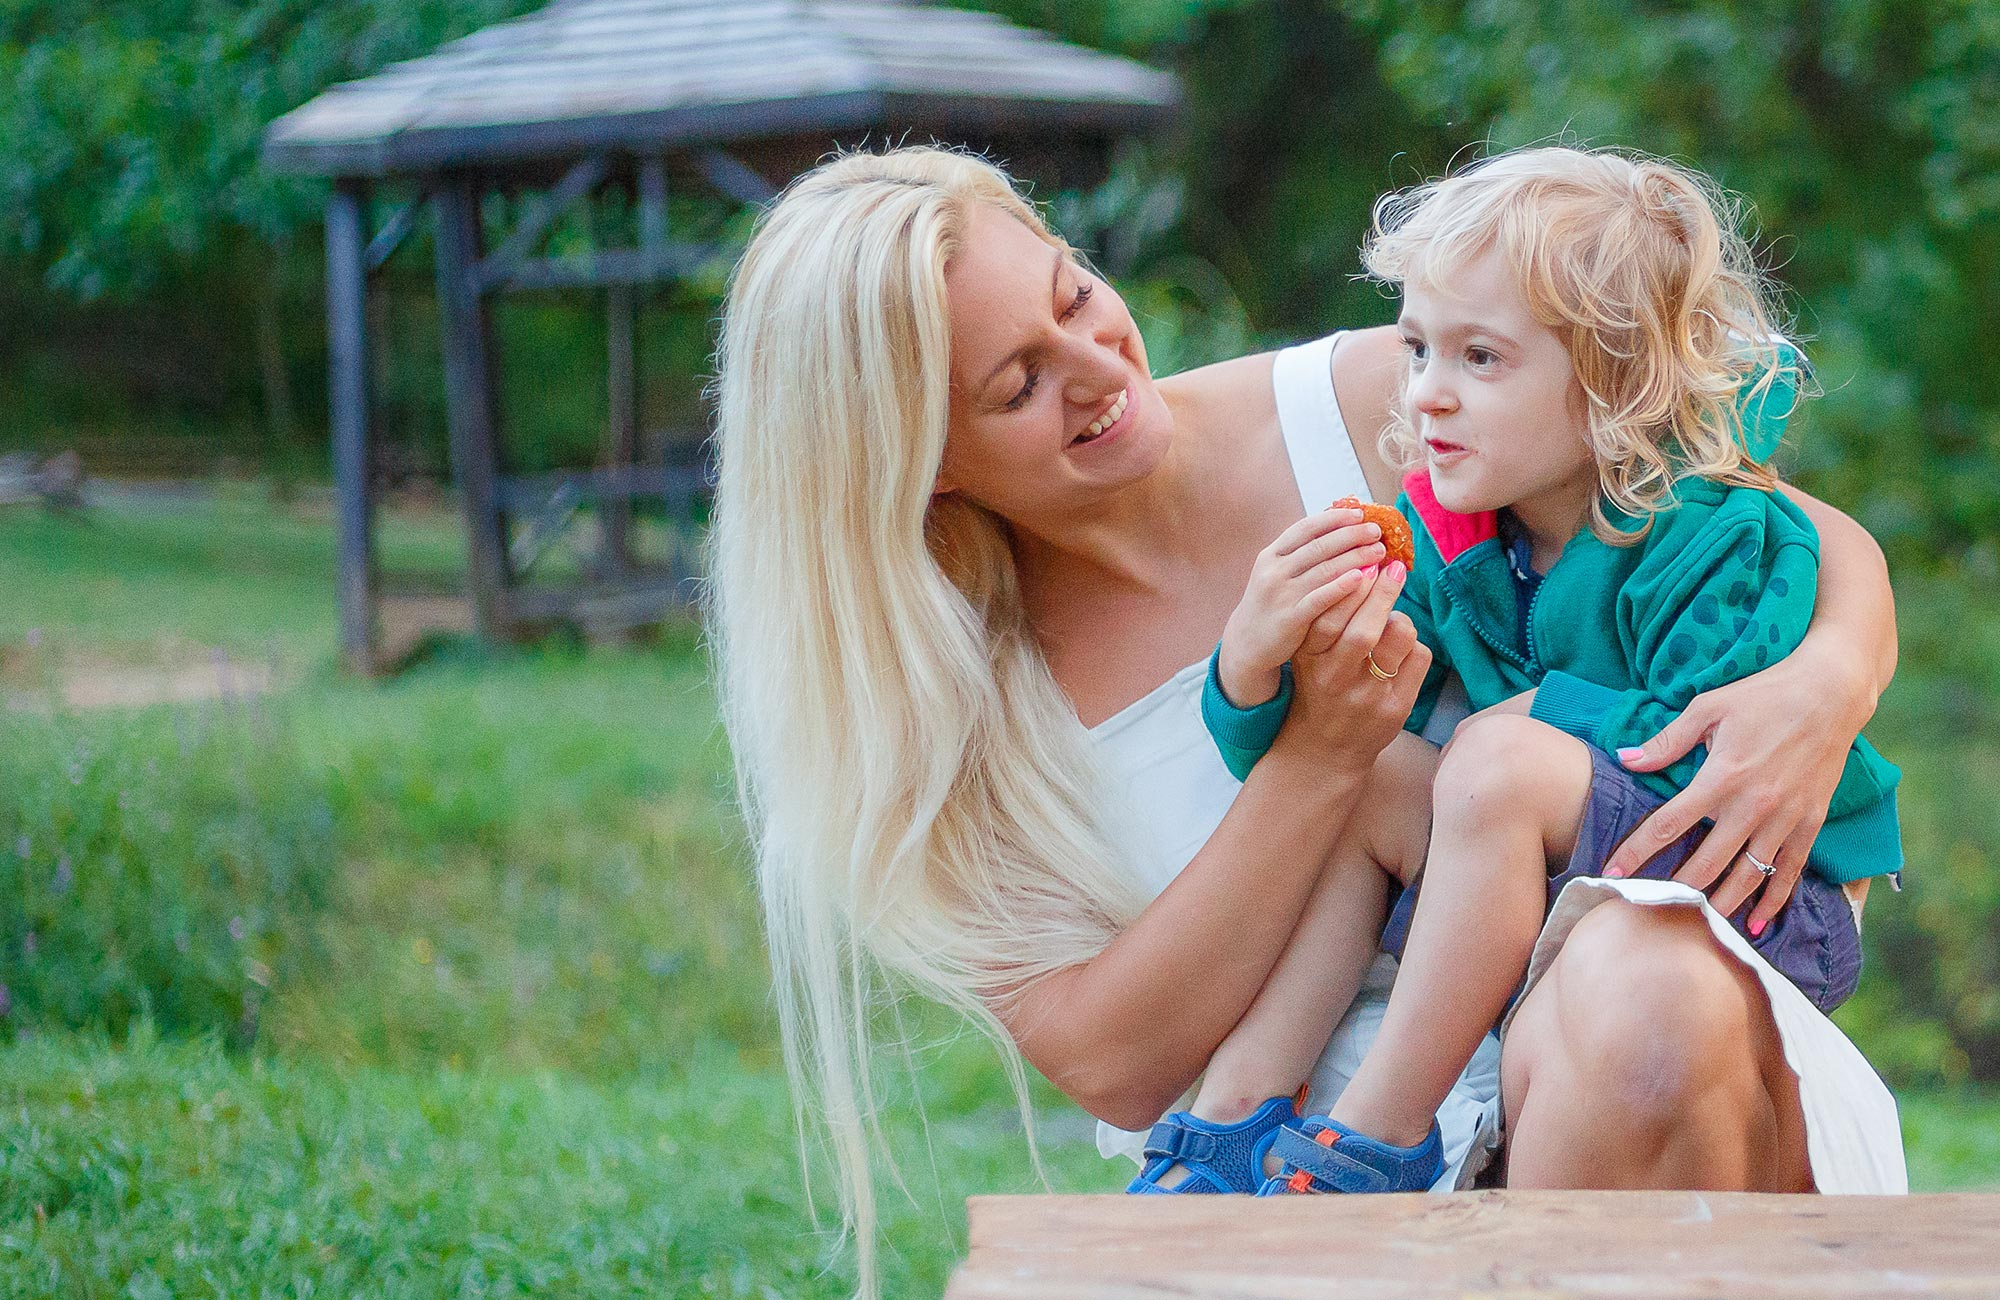 Healthy food for toddlers and up, prepared by a mom